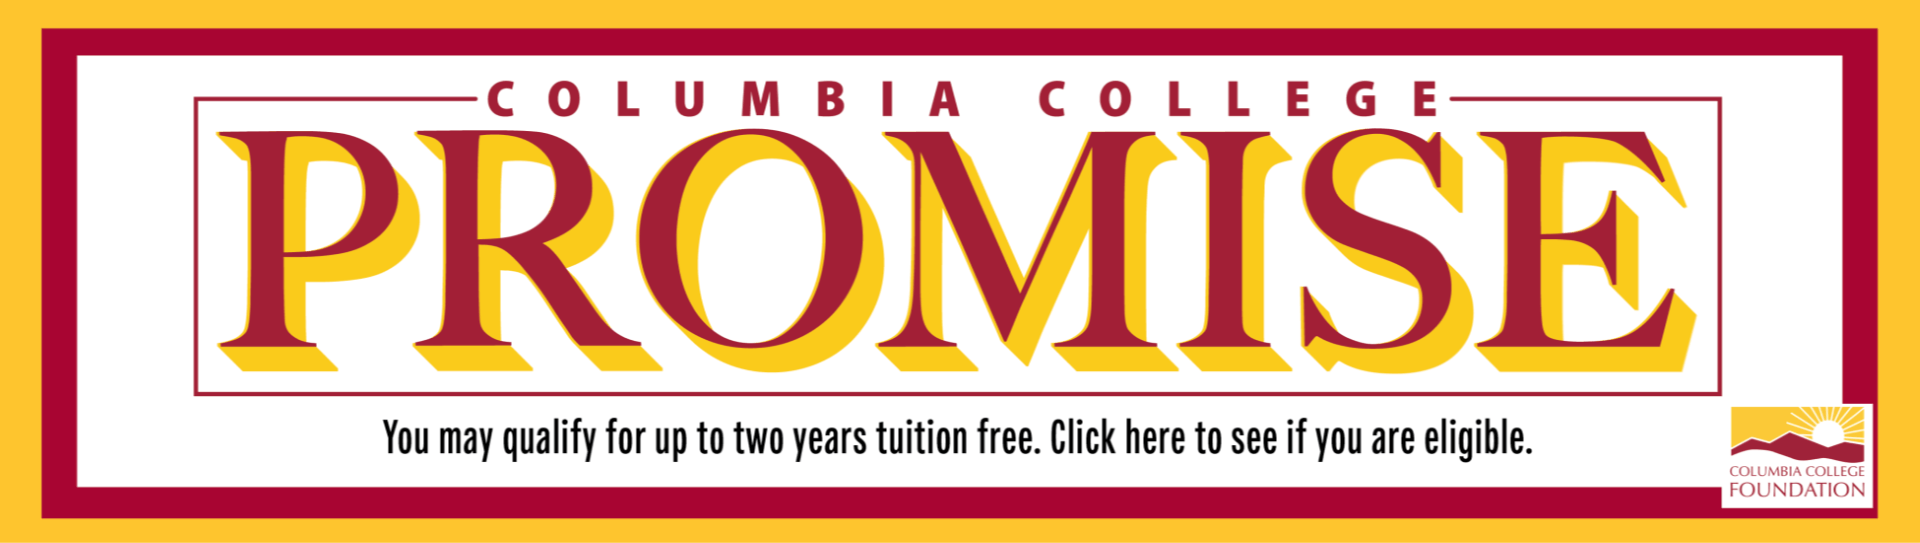 Columbia College Promise First Year Tuition free